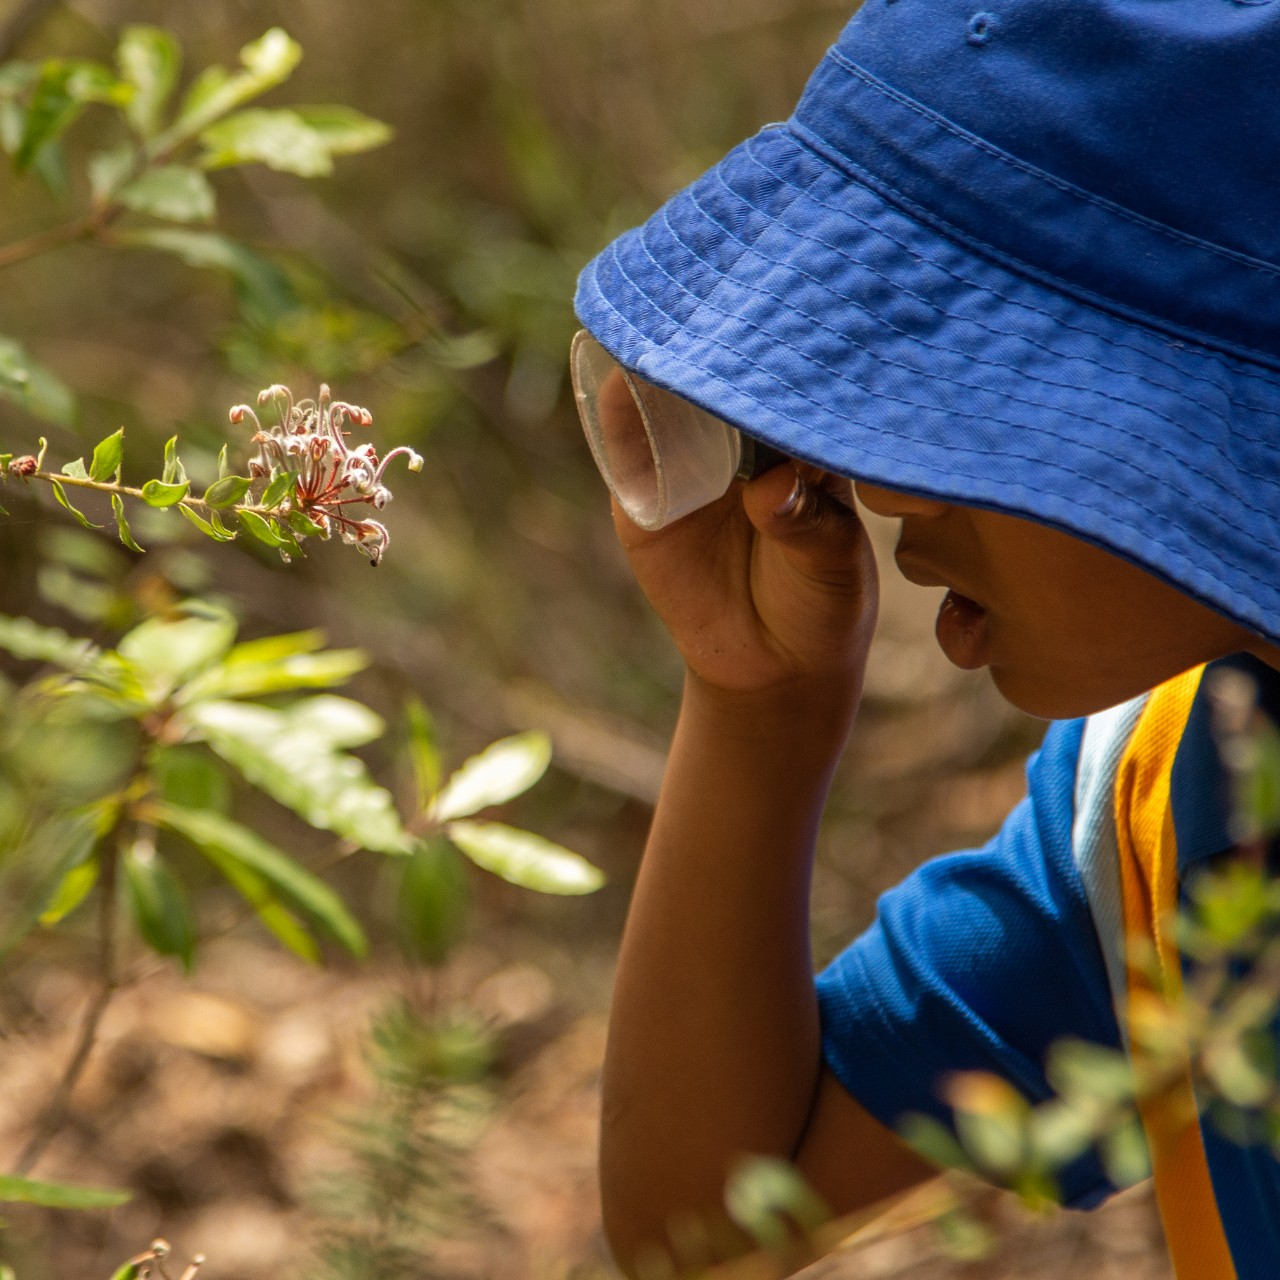 student using a magnifier to look at a flower